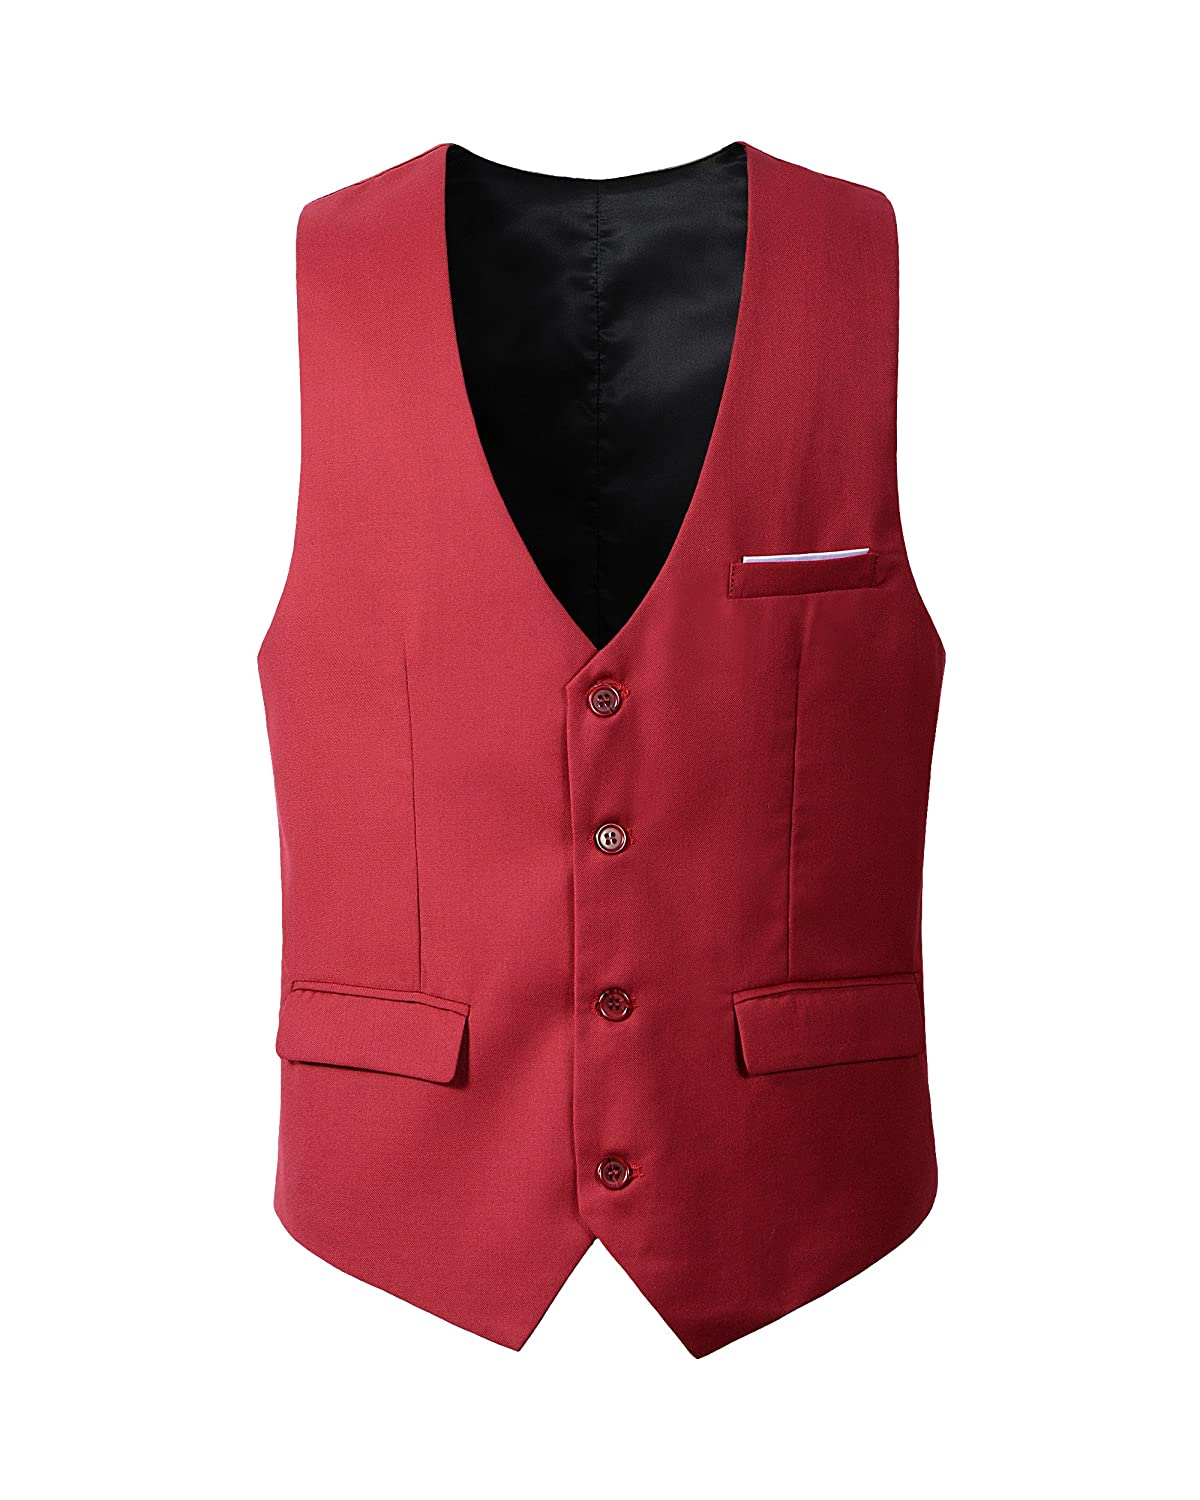 Benibos Men's Slim Fit Suit Vest